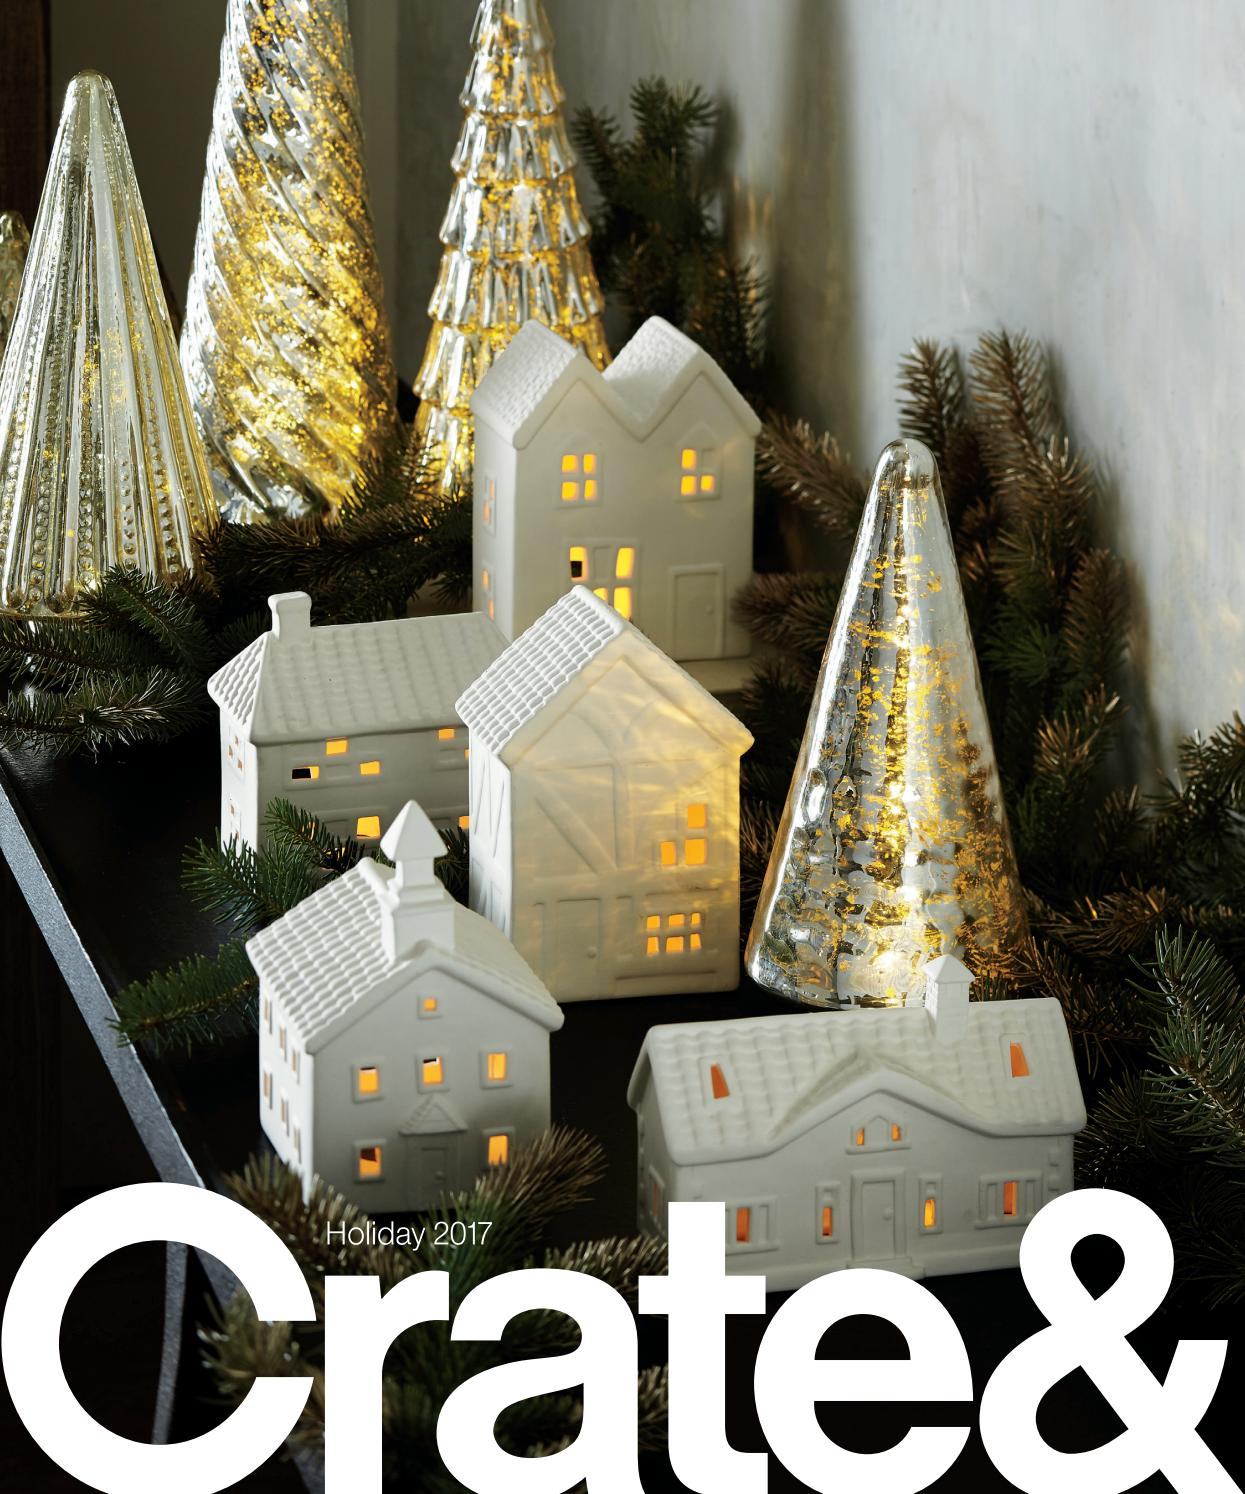 Crate And Barrel Christmas Decorations  from image.isu.pub